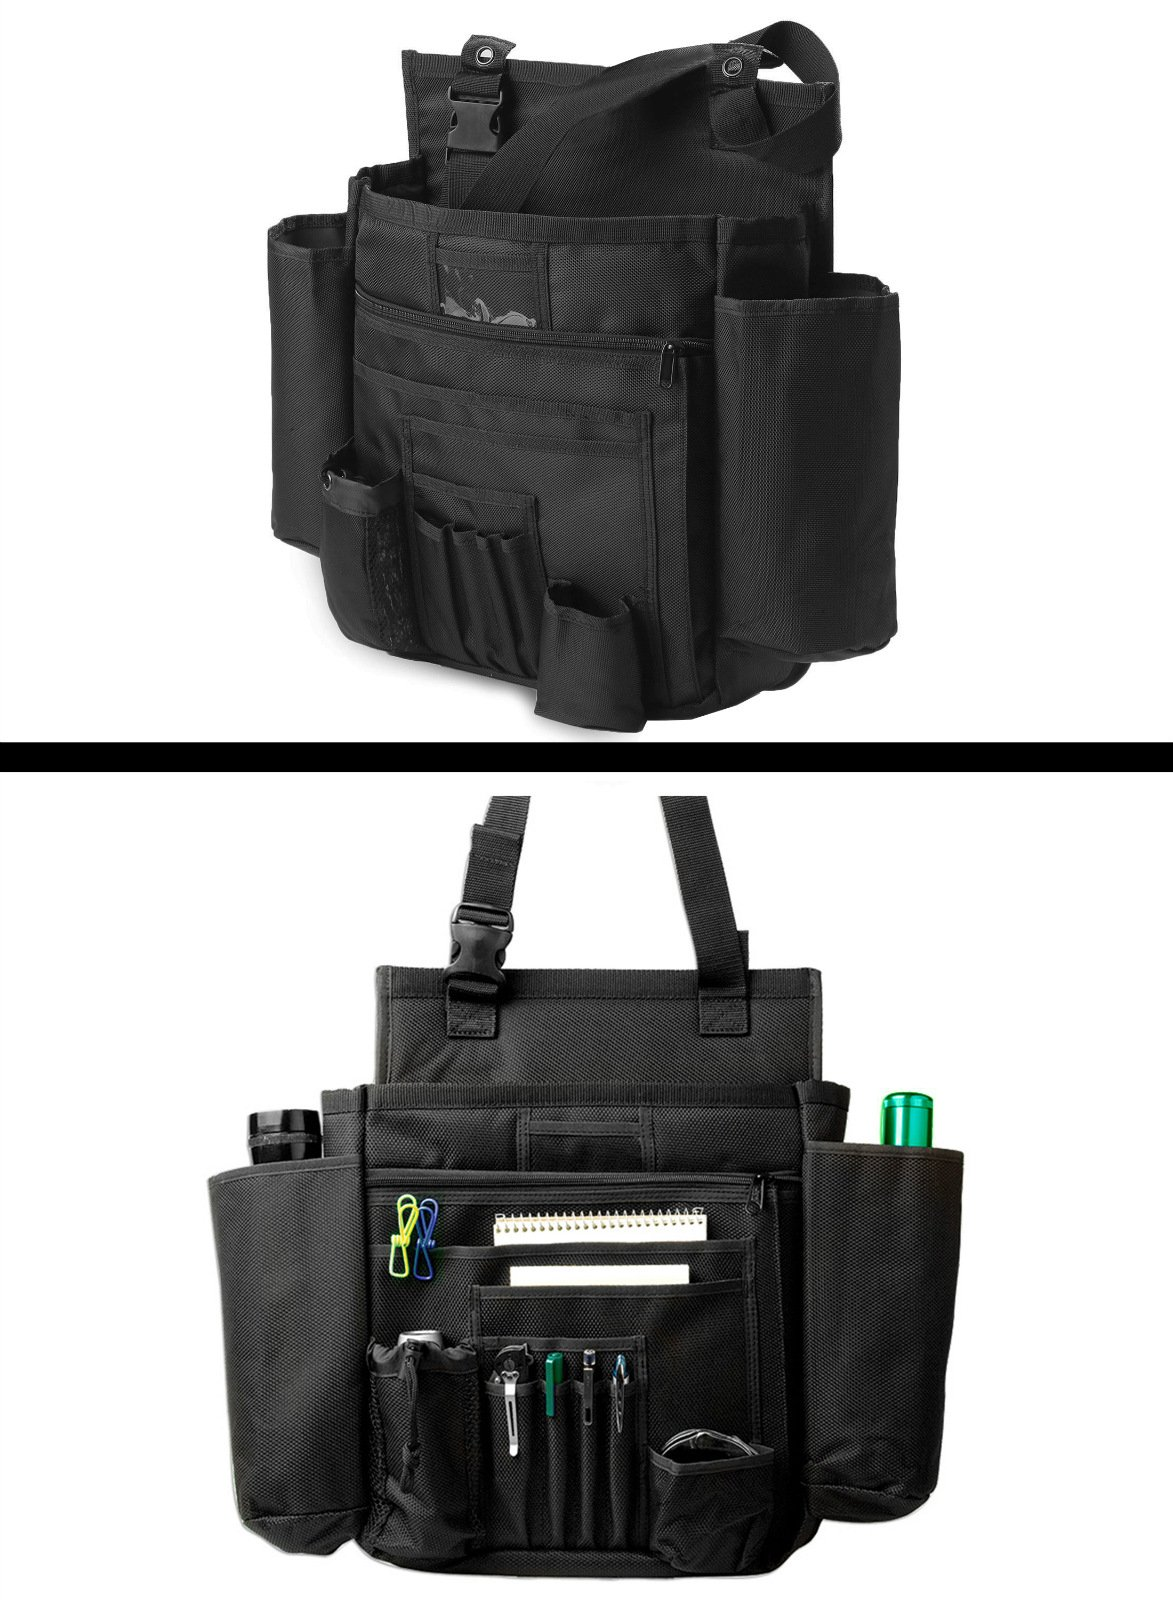 Ultimate Arms Gear Deluxe Car Seat Storage Tactical Gear Organizer Great for Police, Ranger and Security by Ultimate Arms Gear